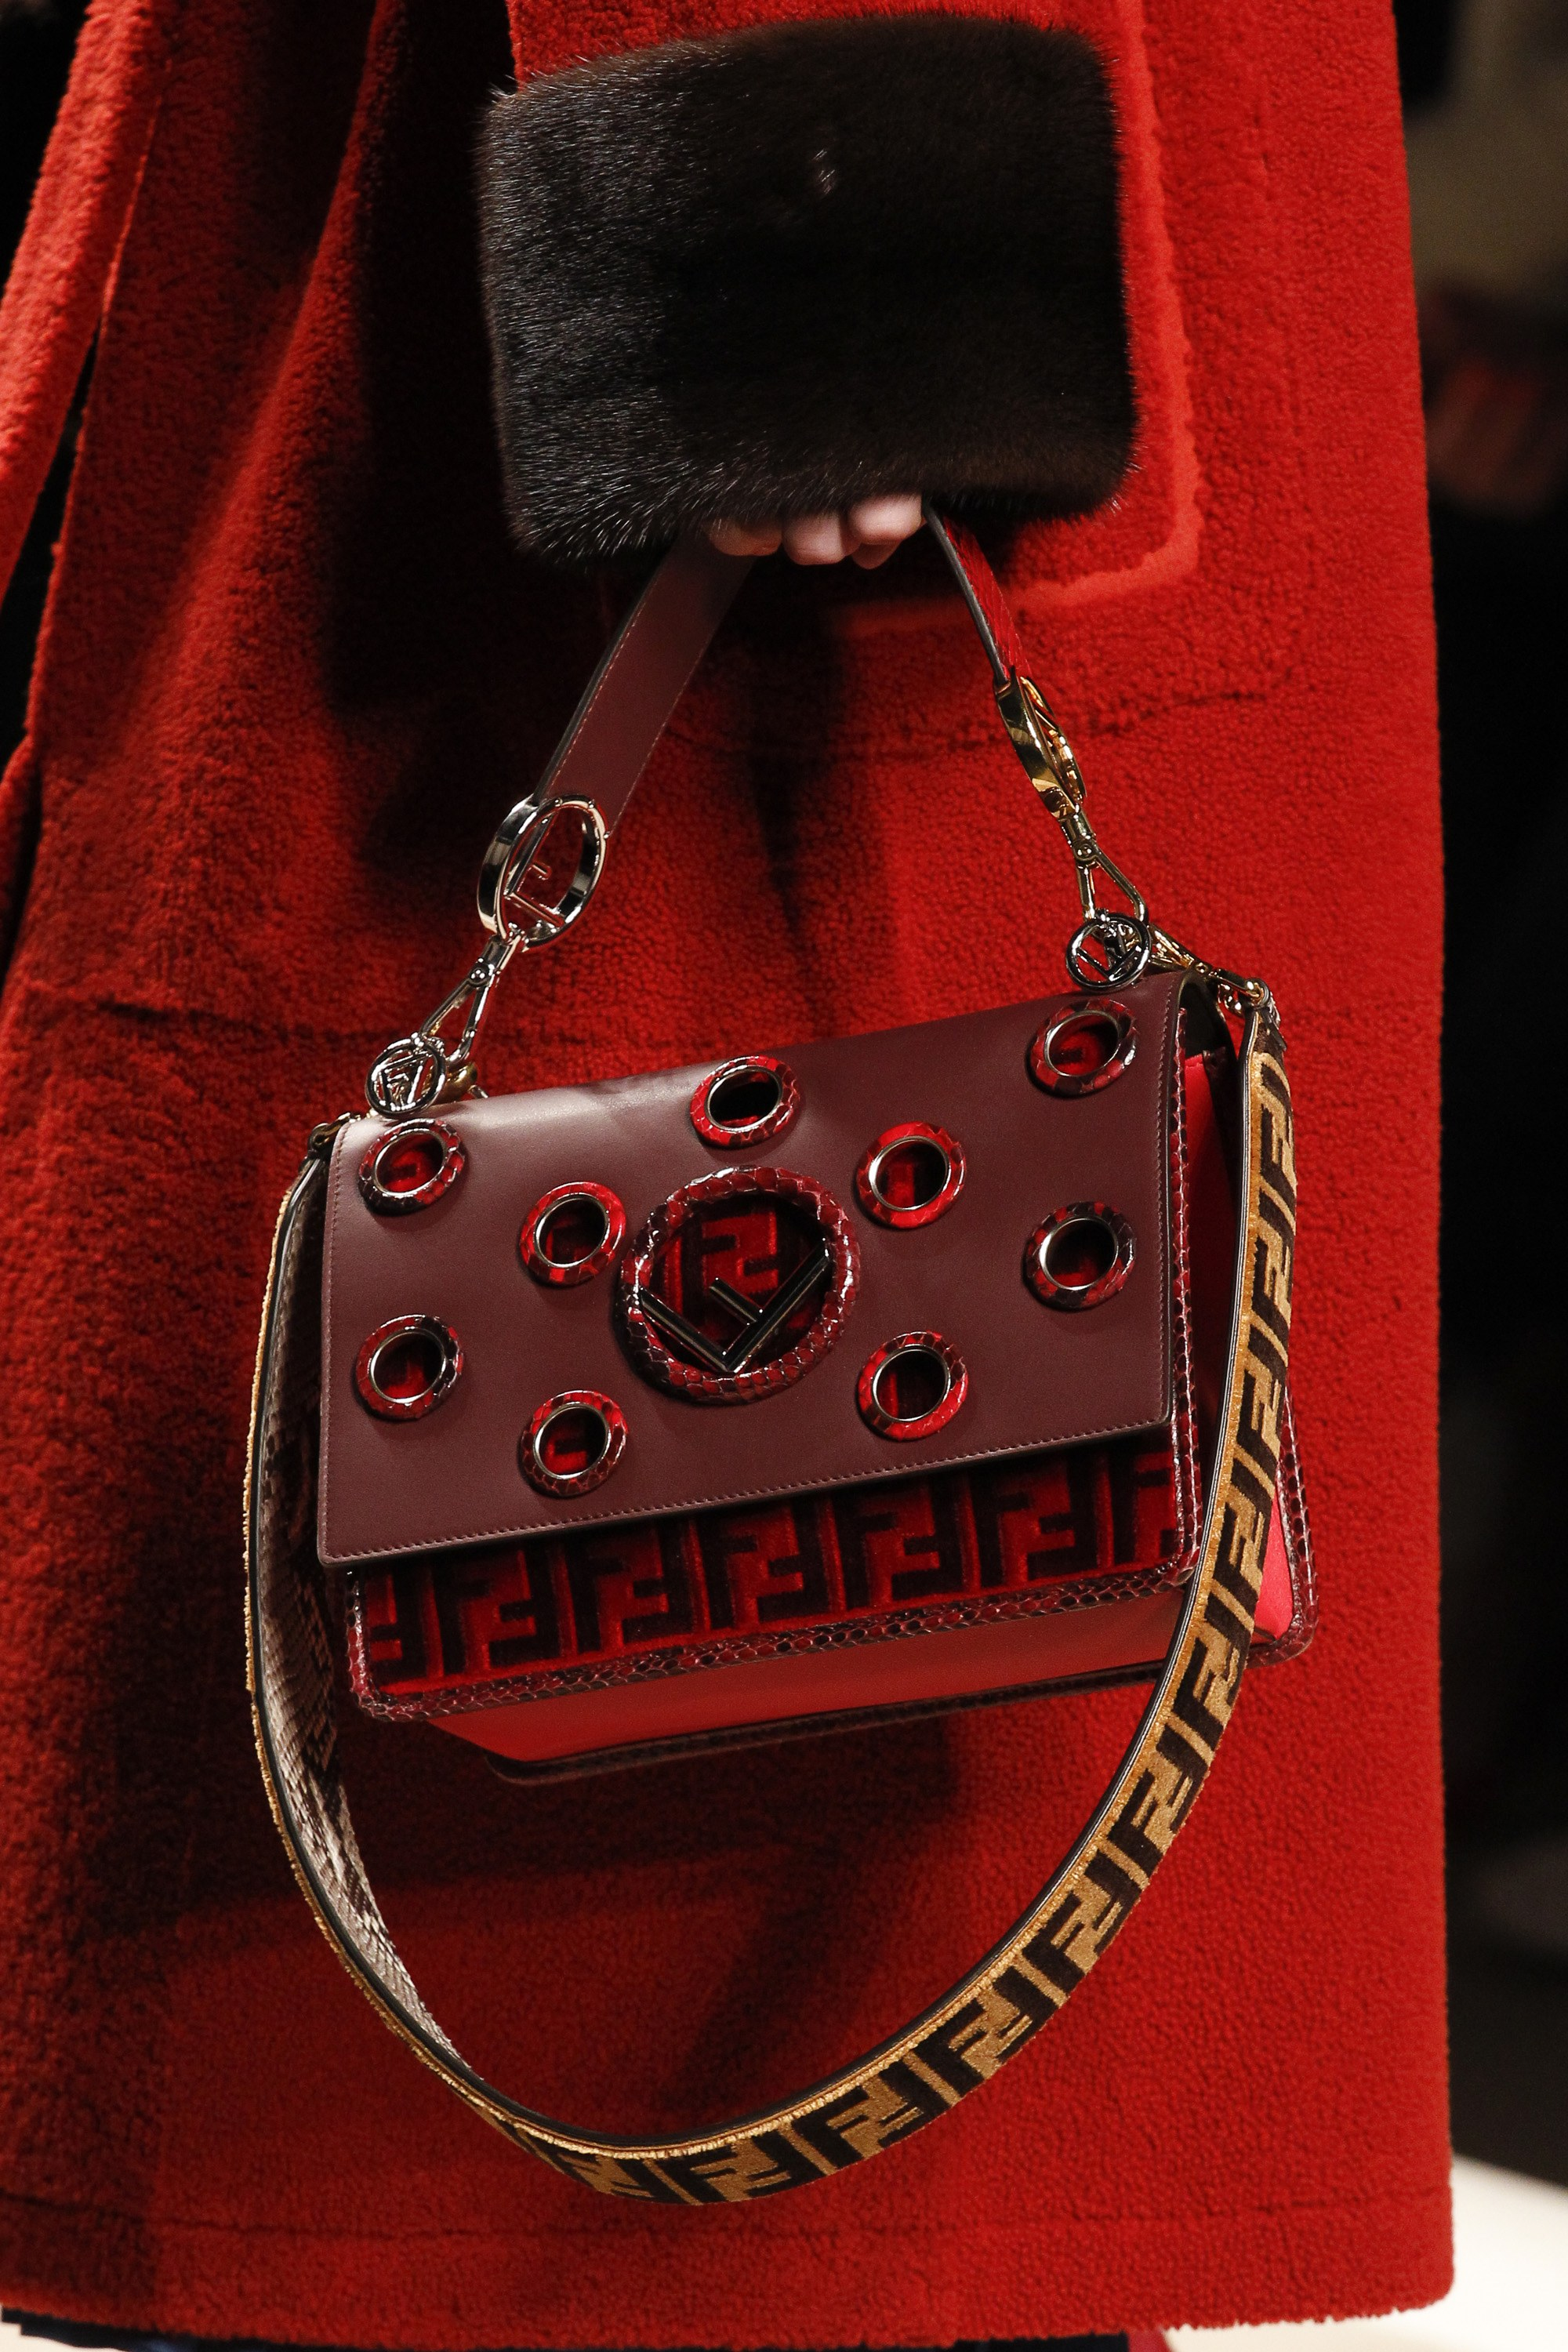 59871e7db79 Fendi Red with Grommets and Zucca Pattern Flap Bag - Fall 2017